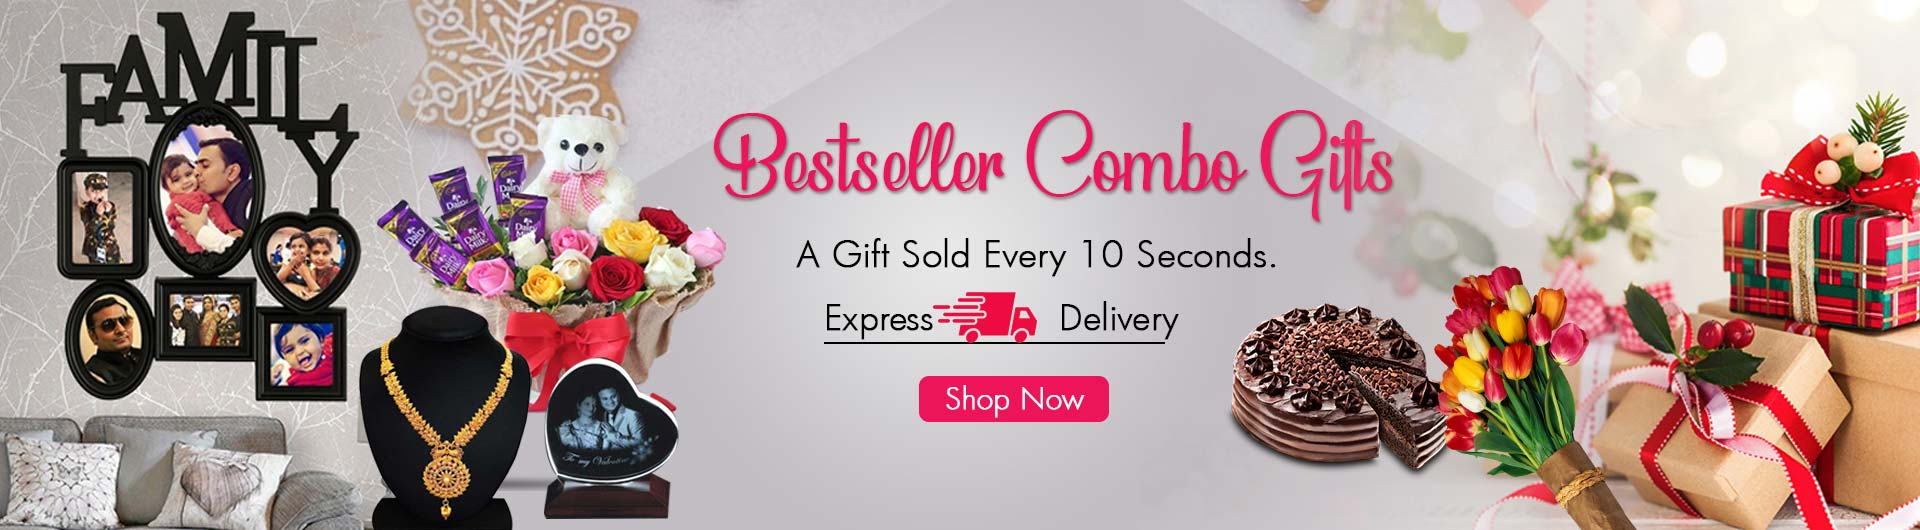 Mothers Day Bestseller Gifts Online